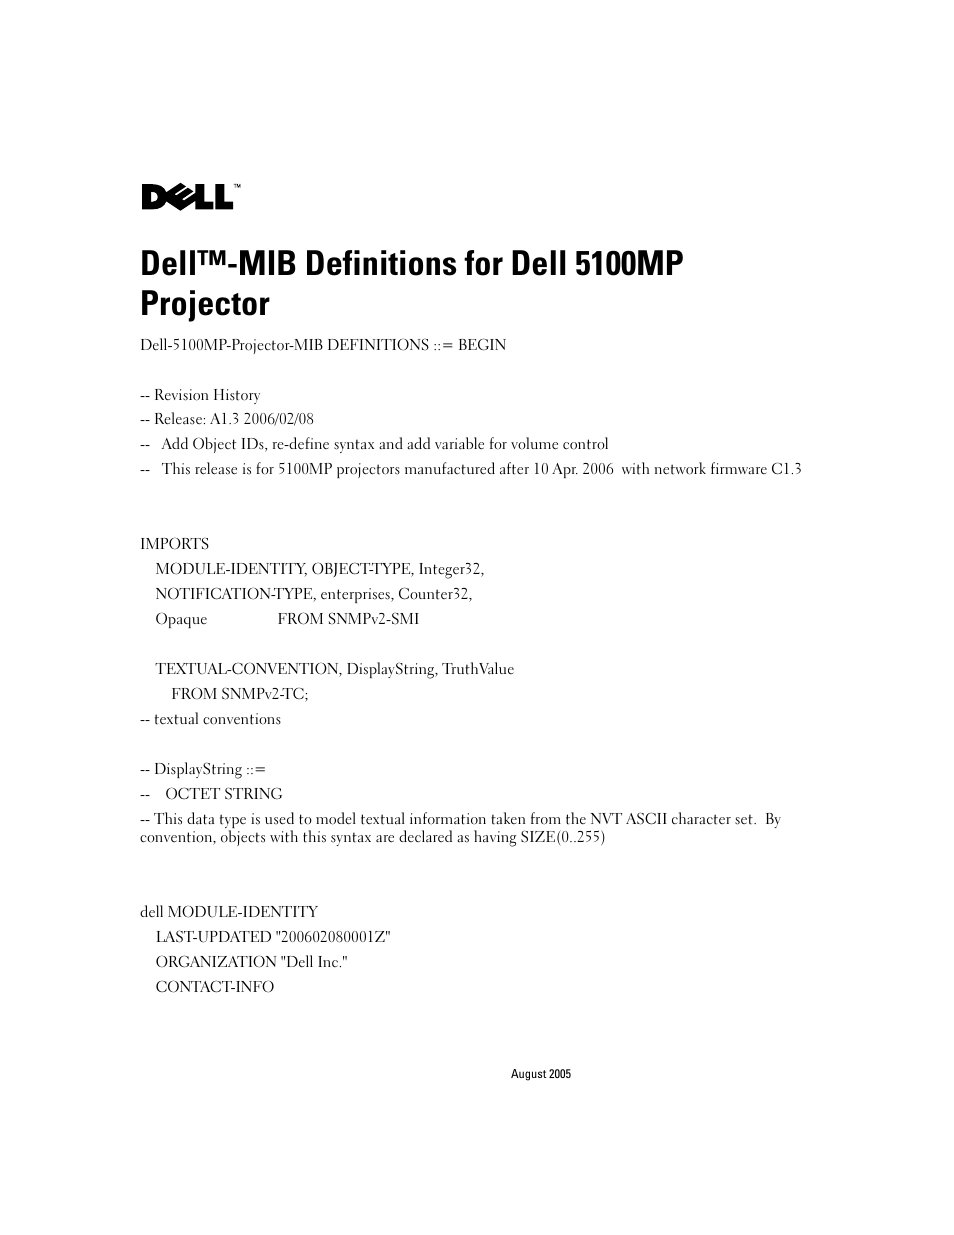 dell 5100mp projector user manual 12 pages rh manualsdir com Dell 5100MP Projector Bulb dell 5100mp projector review